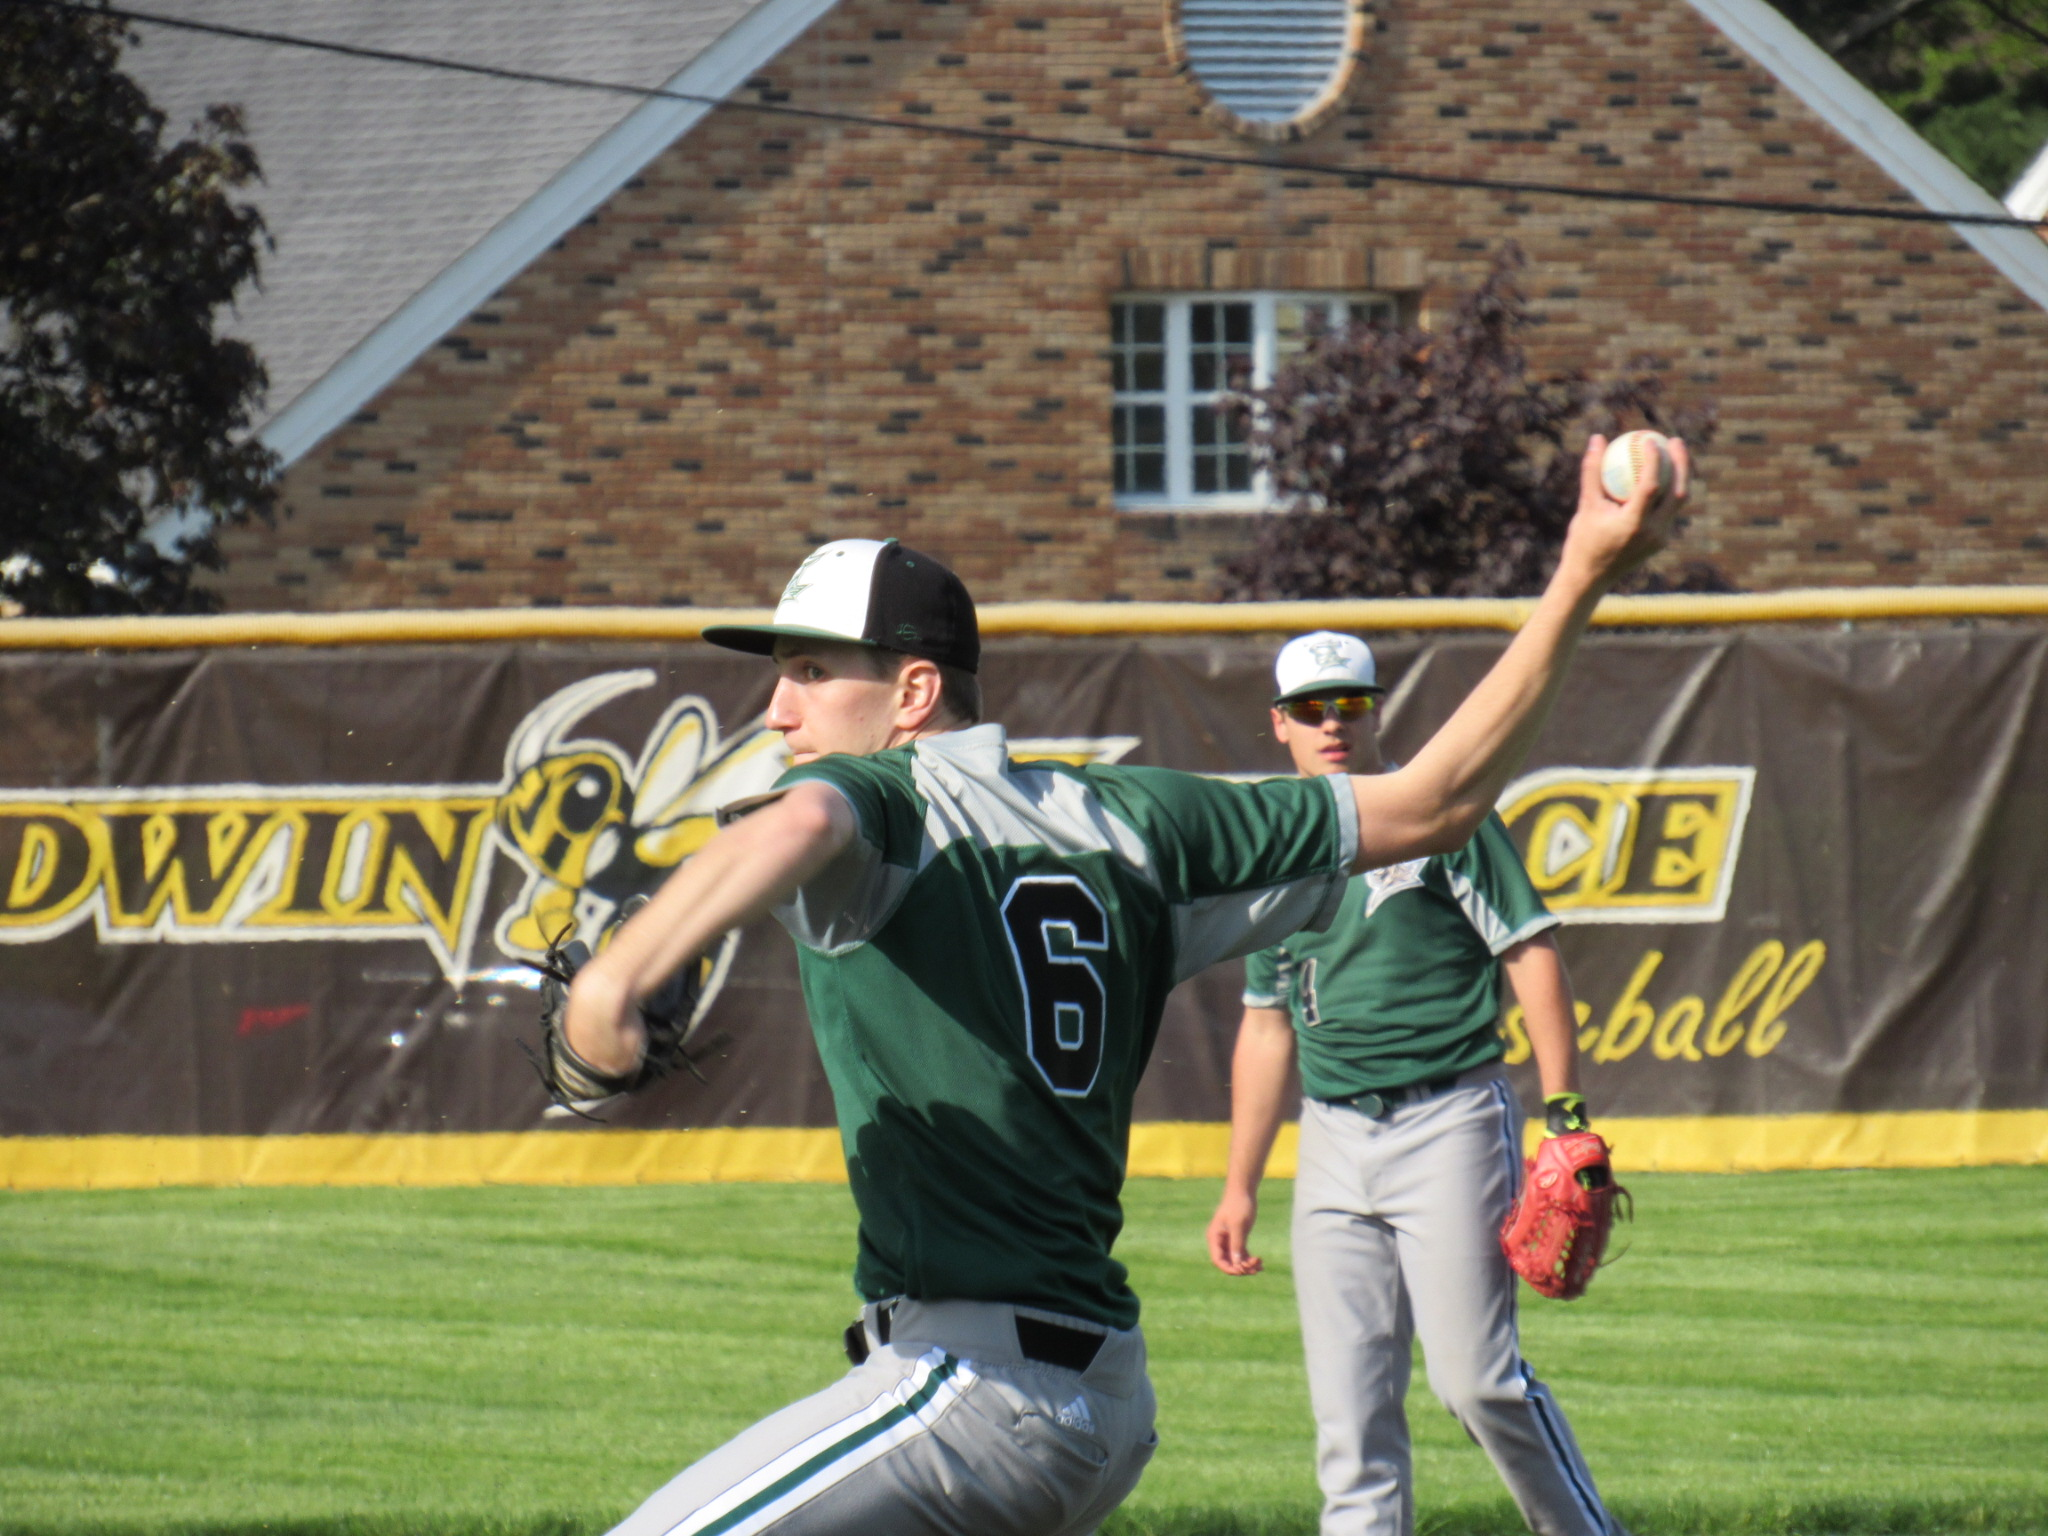 Vic's Corner: Nordonia Knights boys baseball team vs St. Ignatius